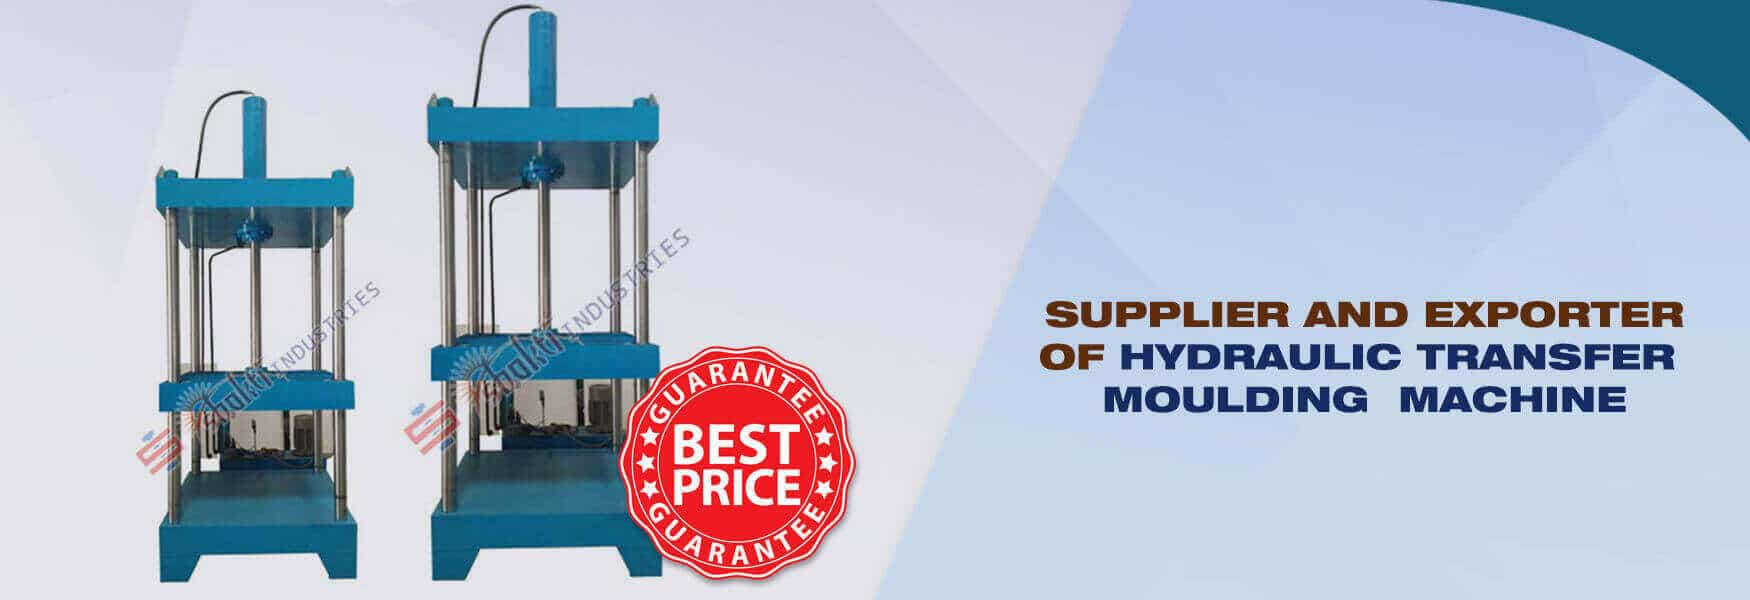 Hydraulic Transfer Moulding Machine Manufacturer, Supplier and Exporter in Gujarat, India